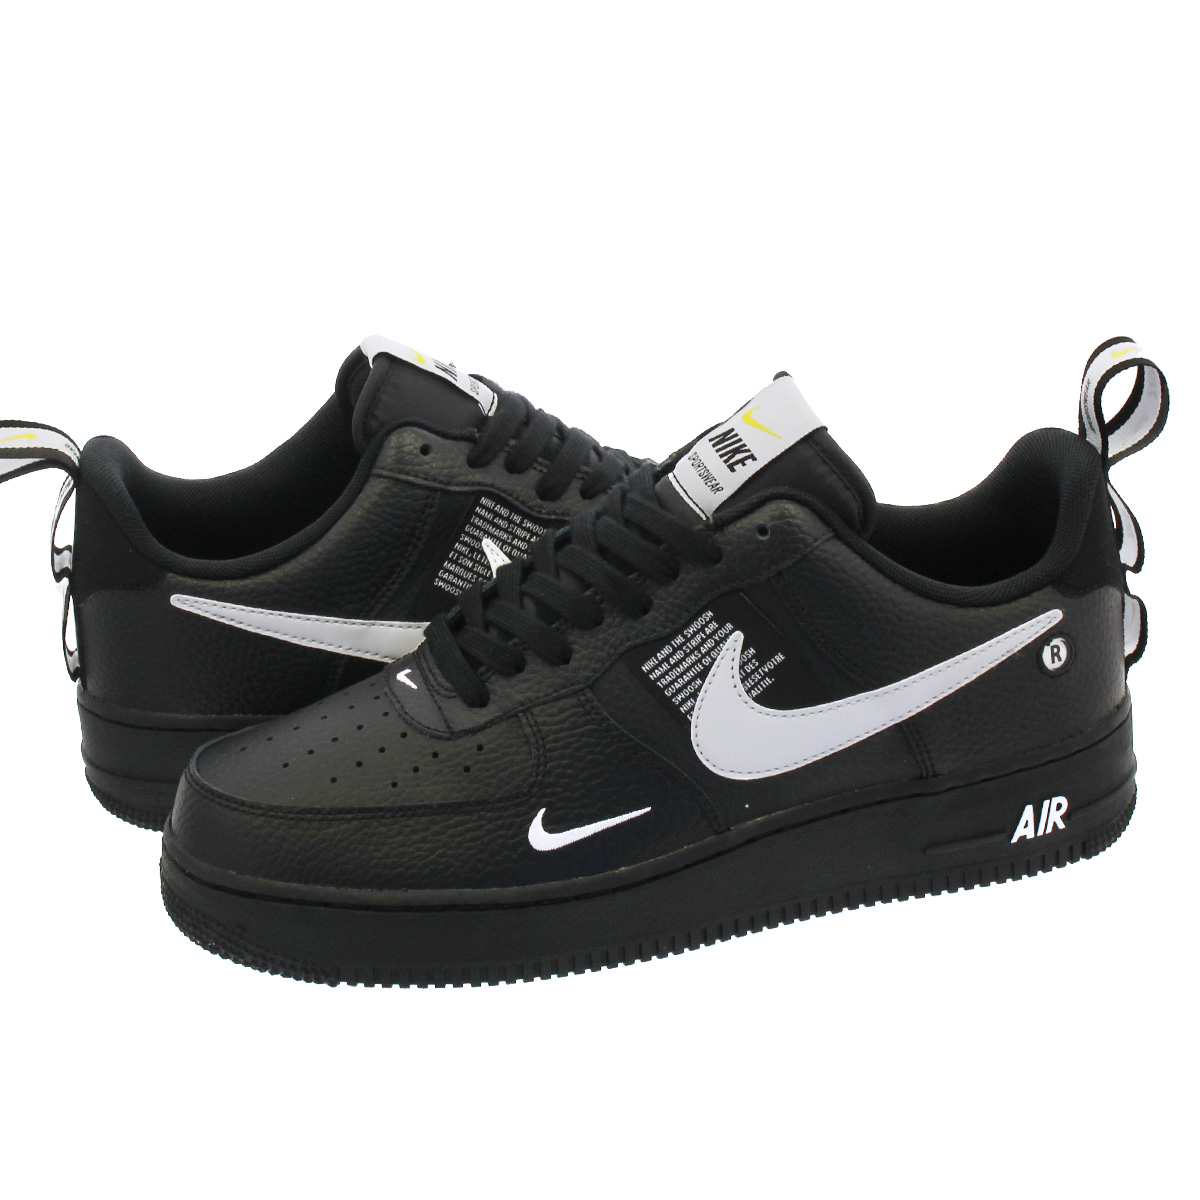 NIKE AIR FORCE 1 '07 LV8 UTILITY Nike air force 1 '07 LV8 utility  BLACK/WHITE/BLACK/TOUR YELLOW aj7747-001